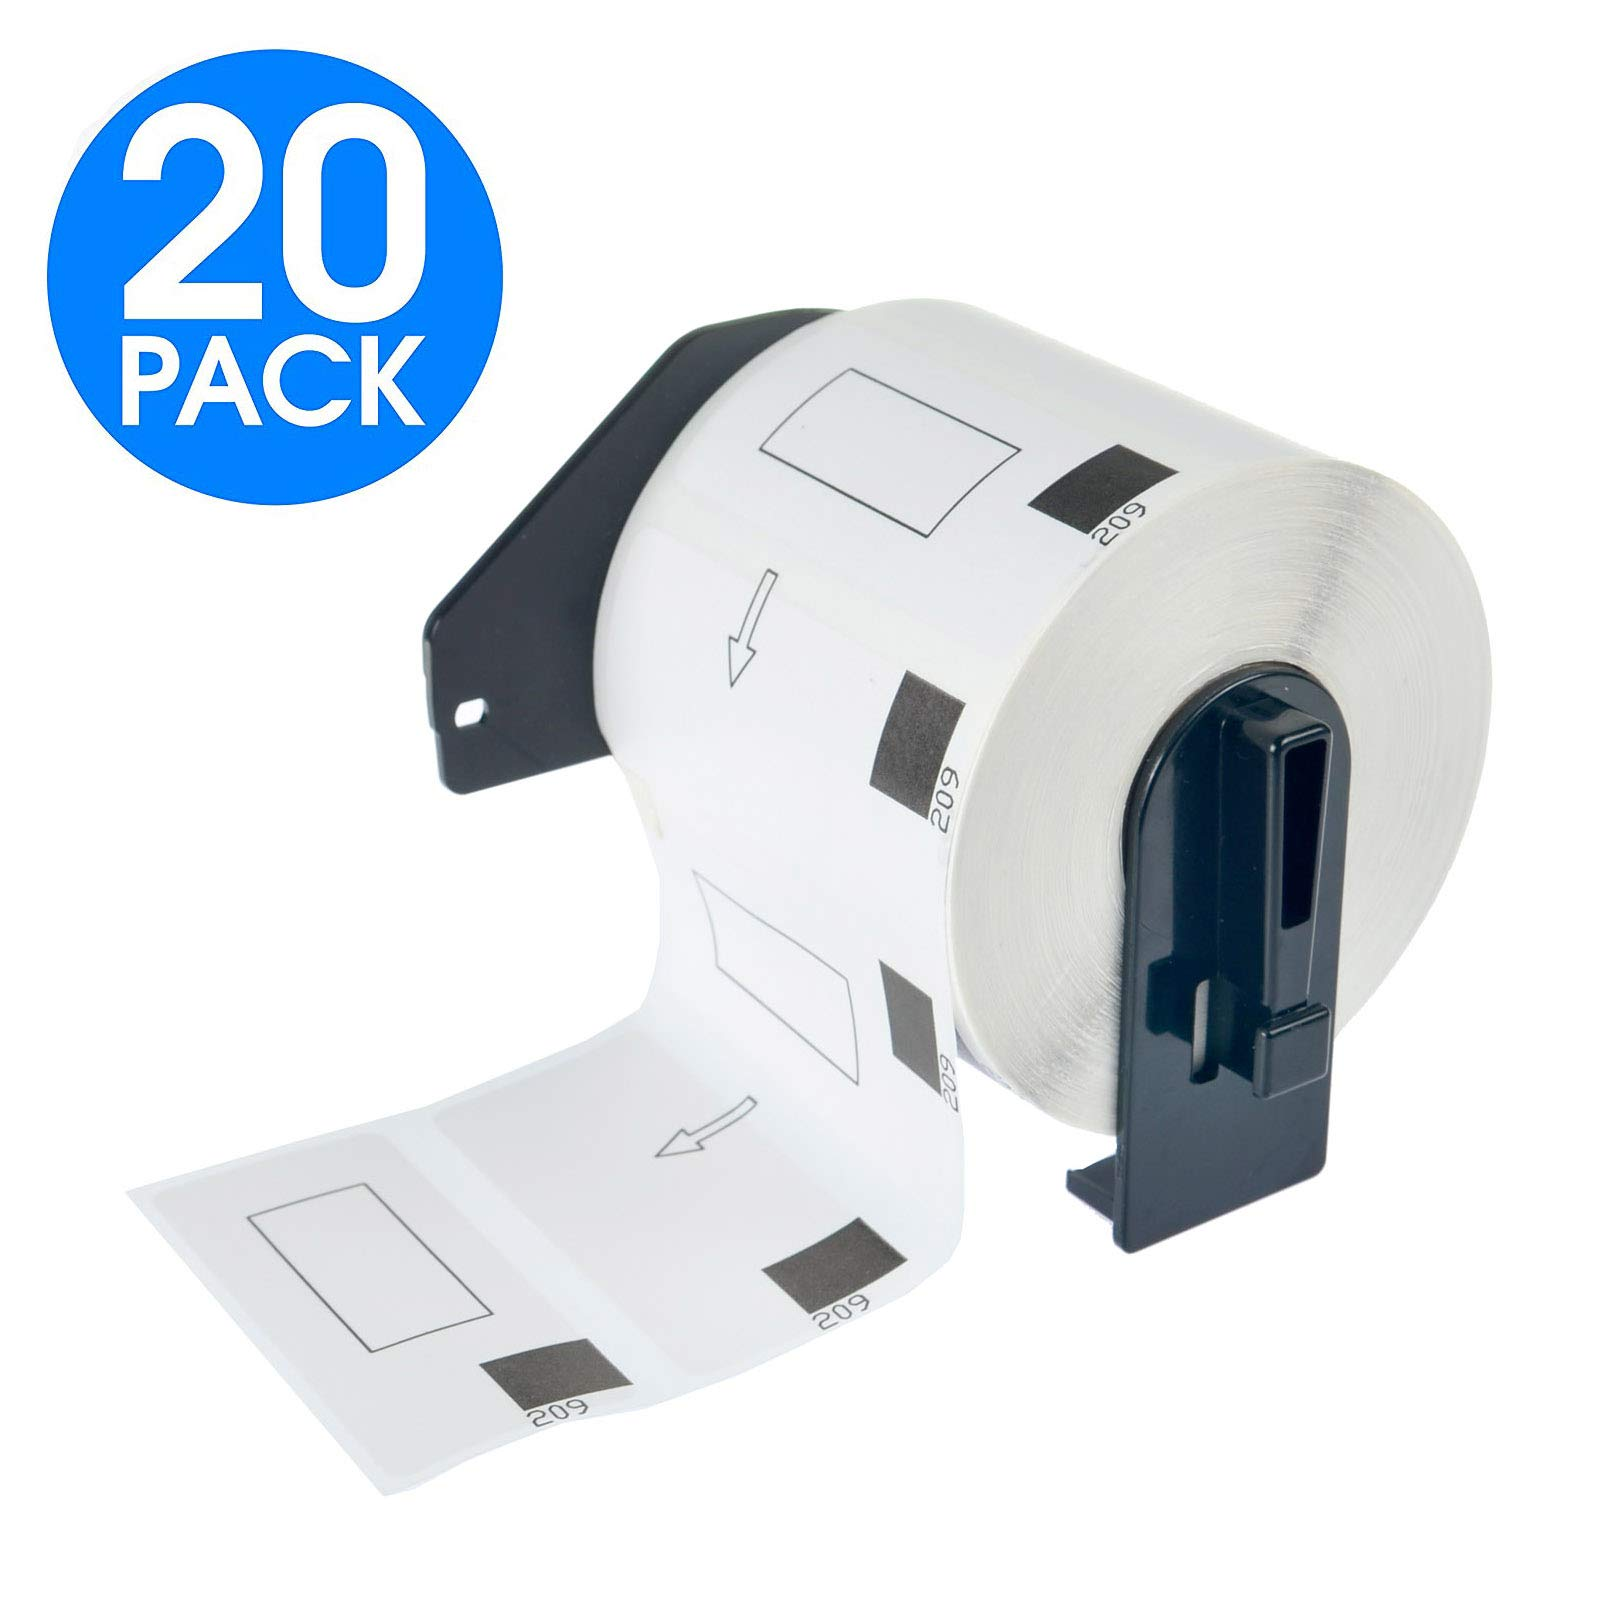 KCYMTONER 20 Rolls DK-1209 Continuous Length Paper Labels,1-1/7'' x 2-3/7'' (29mm x 62mm),Compatible with Brother P-Touch QL-Series Printers QL-560 QL-570 QL-580N QL-1060N,Includes (20) Snap-On-Frame